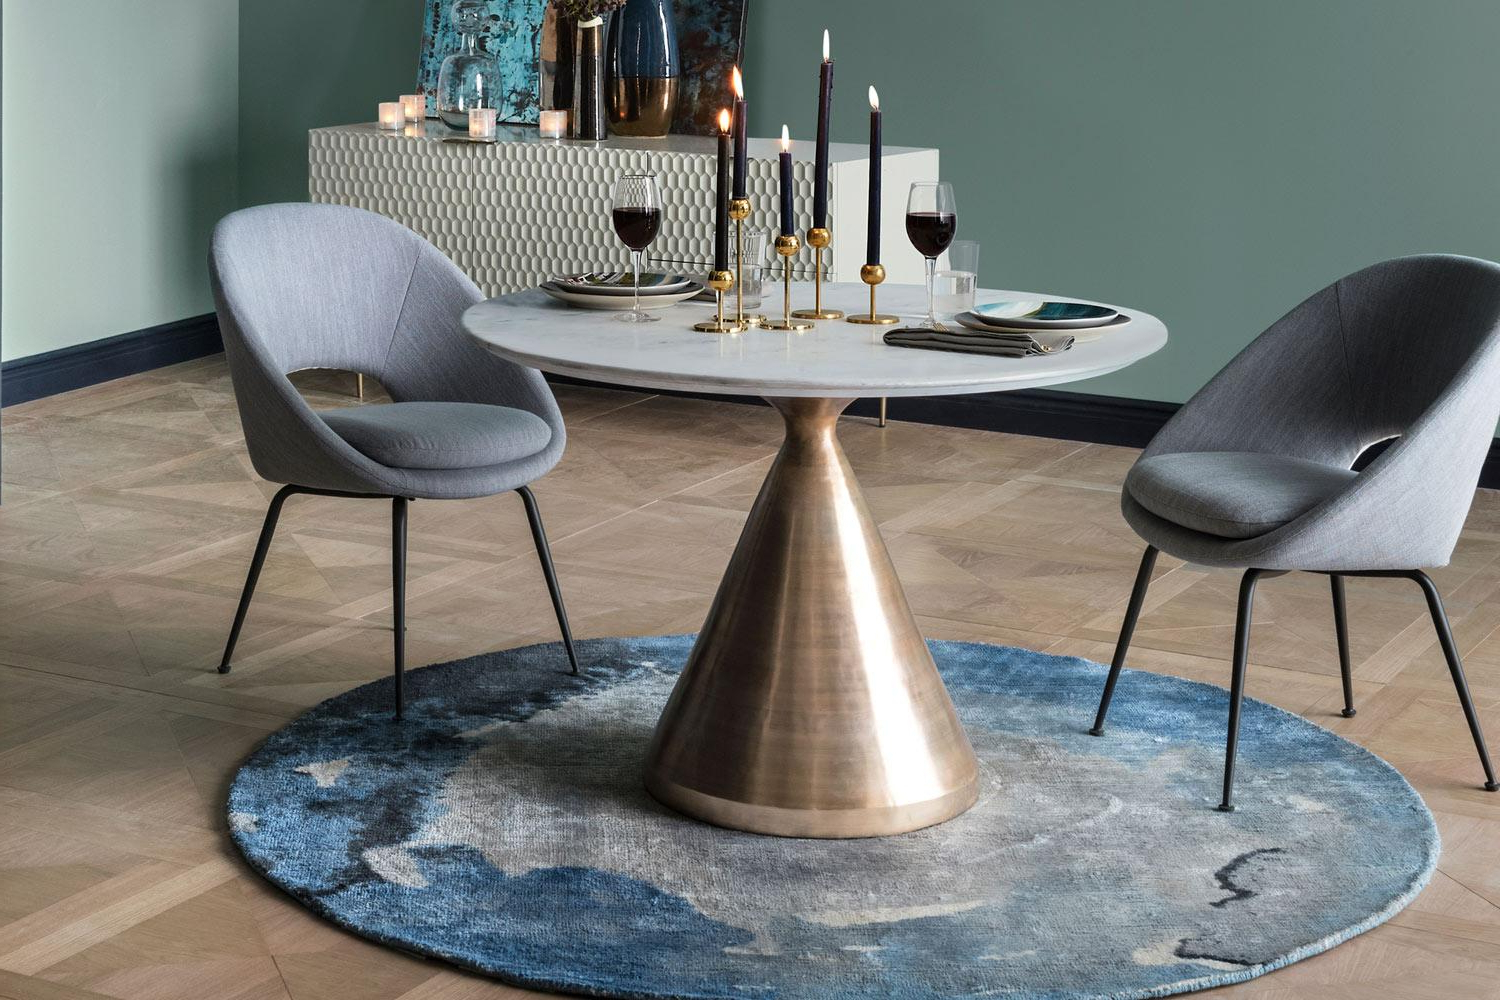 Rustic Mid Century Modern 6 Seating Dining Tables In White And Natural Wood In 2017 Best Dining Tables: The Best Stylish Dining Room Tables  (View 20 of 30)